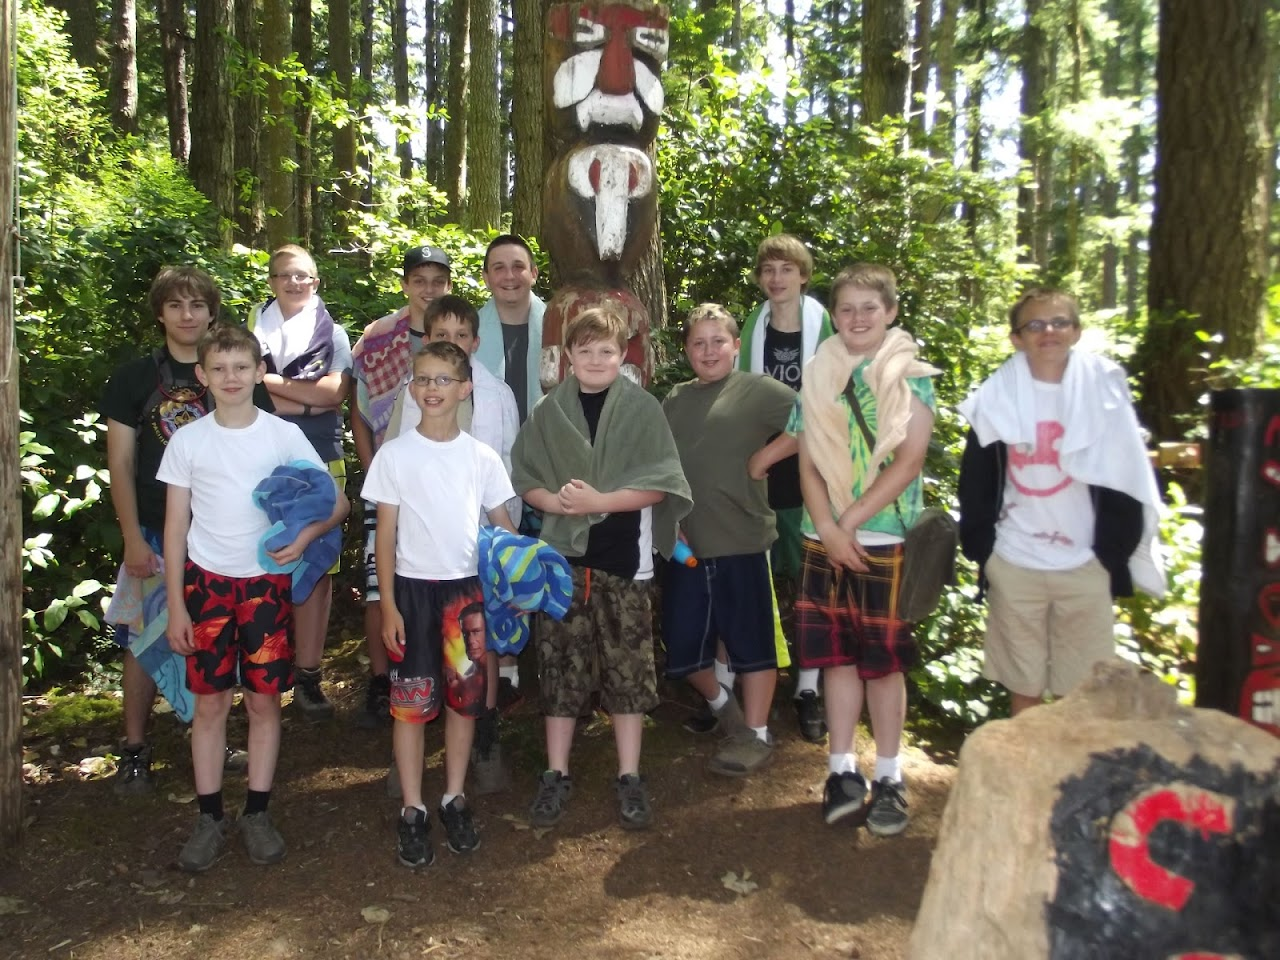 Camp Meriwether - DSCF3195.JPG